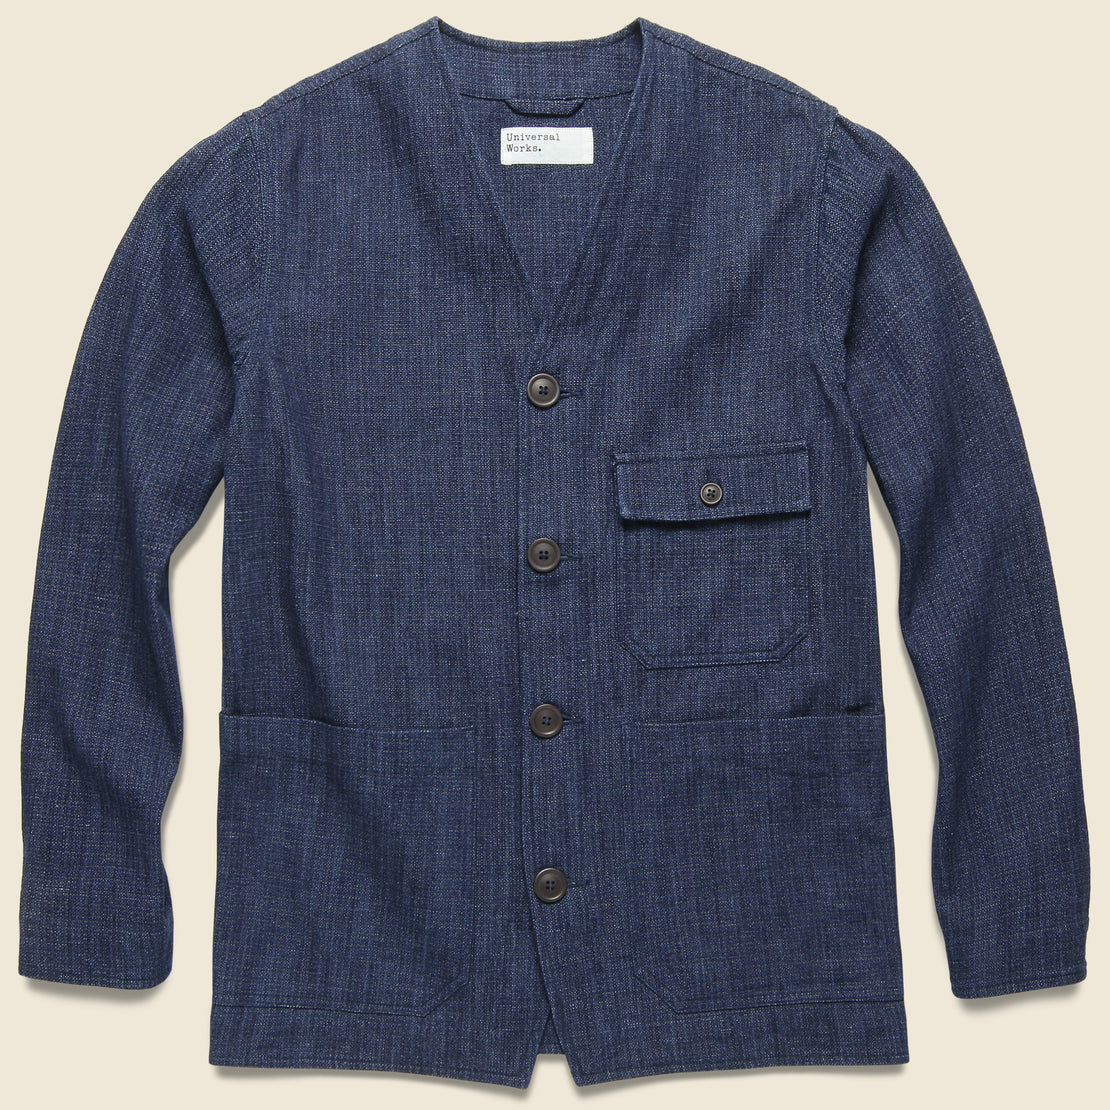 Universal Works Cabin Jacket  - Indigo Denim